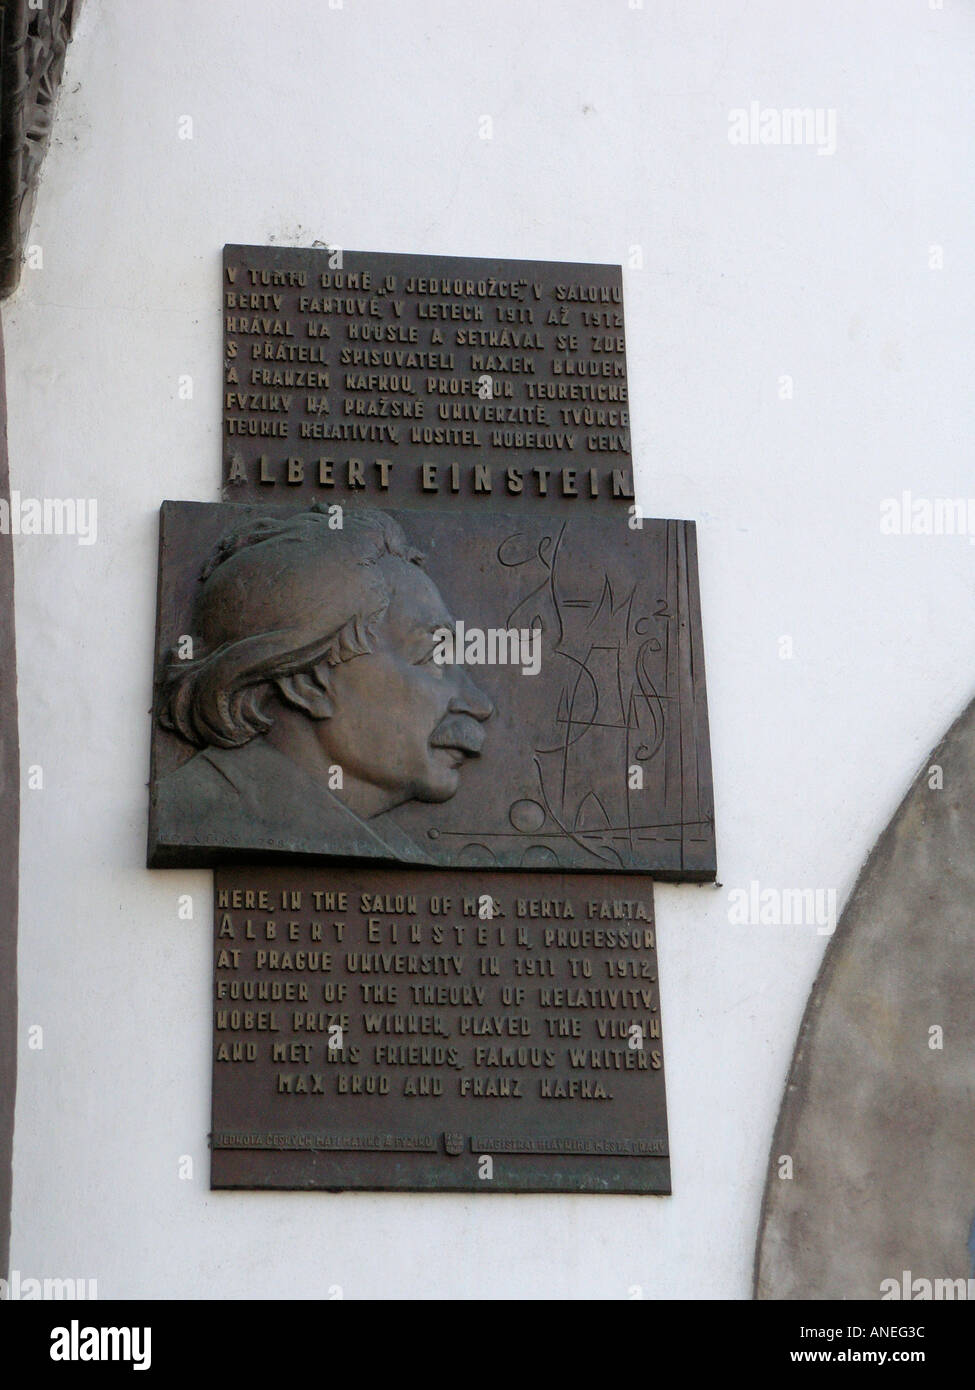 Memorial plaque outside the salon of Mrs Berta Fanta where Albert Einstein, founder of the theory of relativity - Stock Image